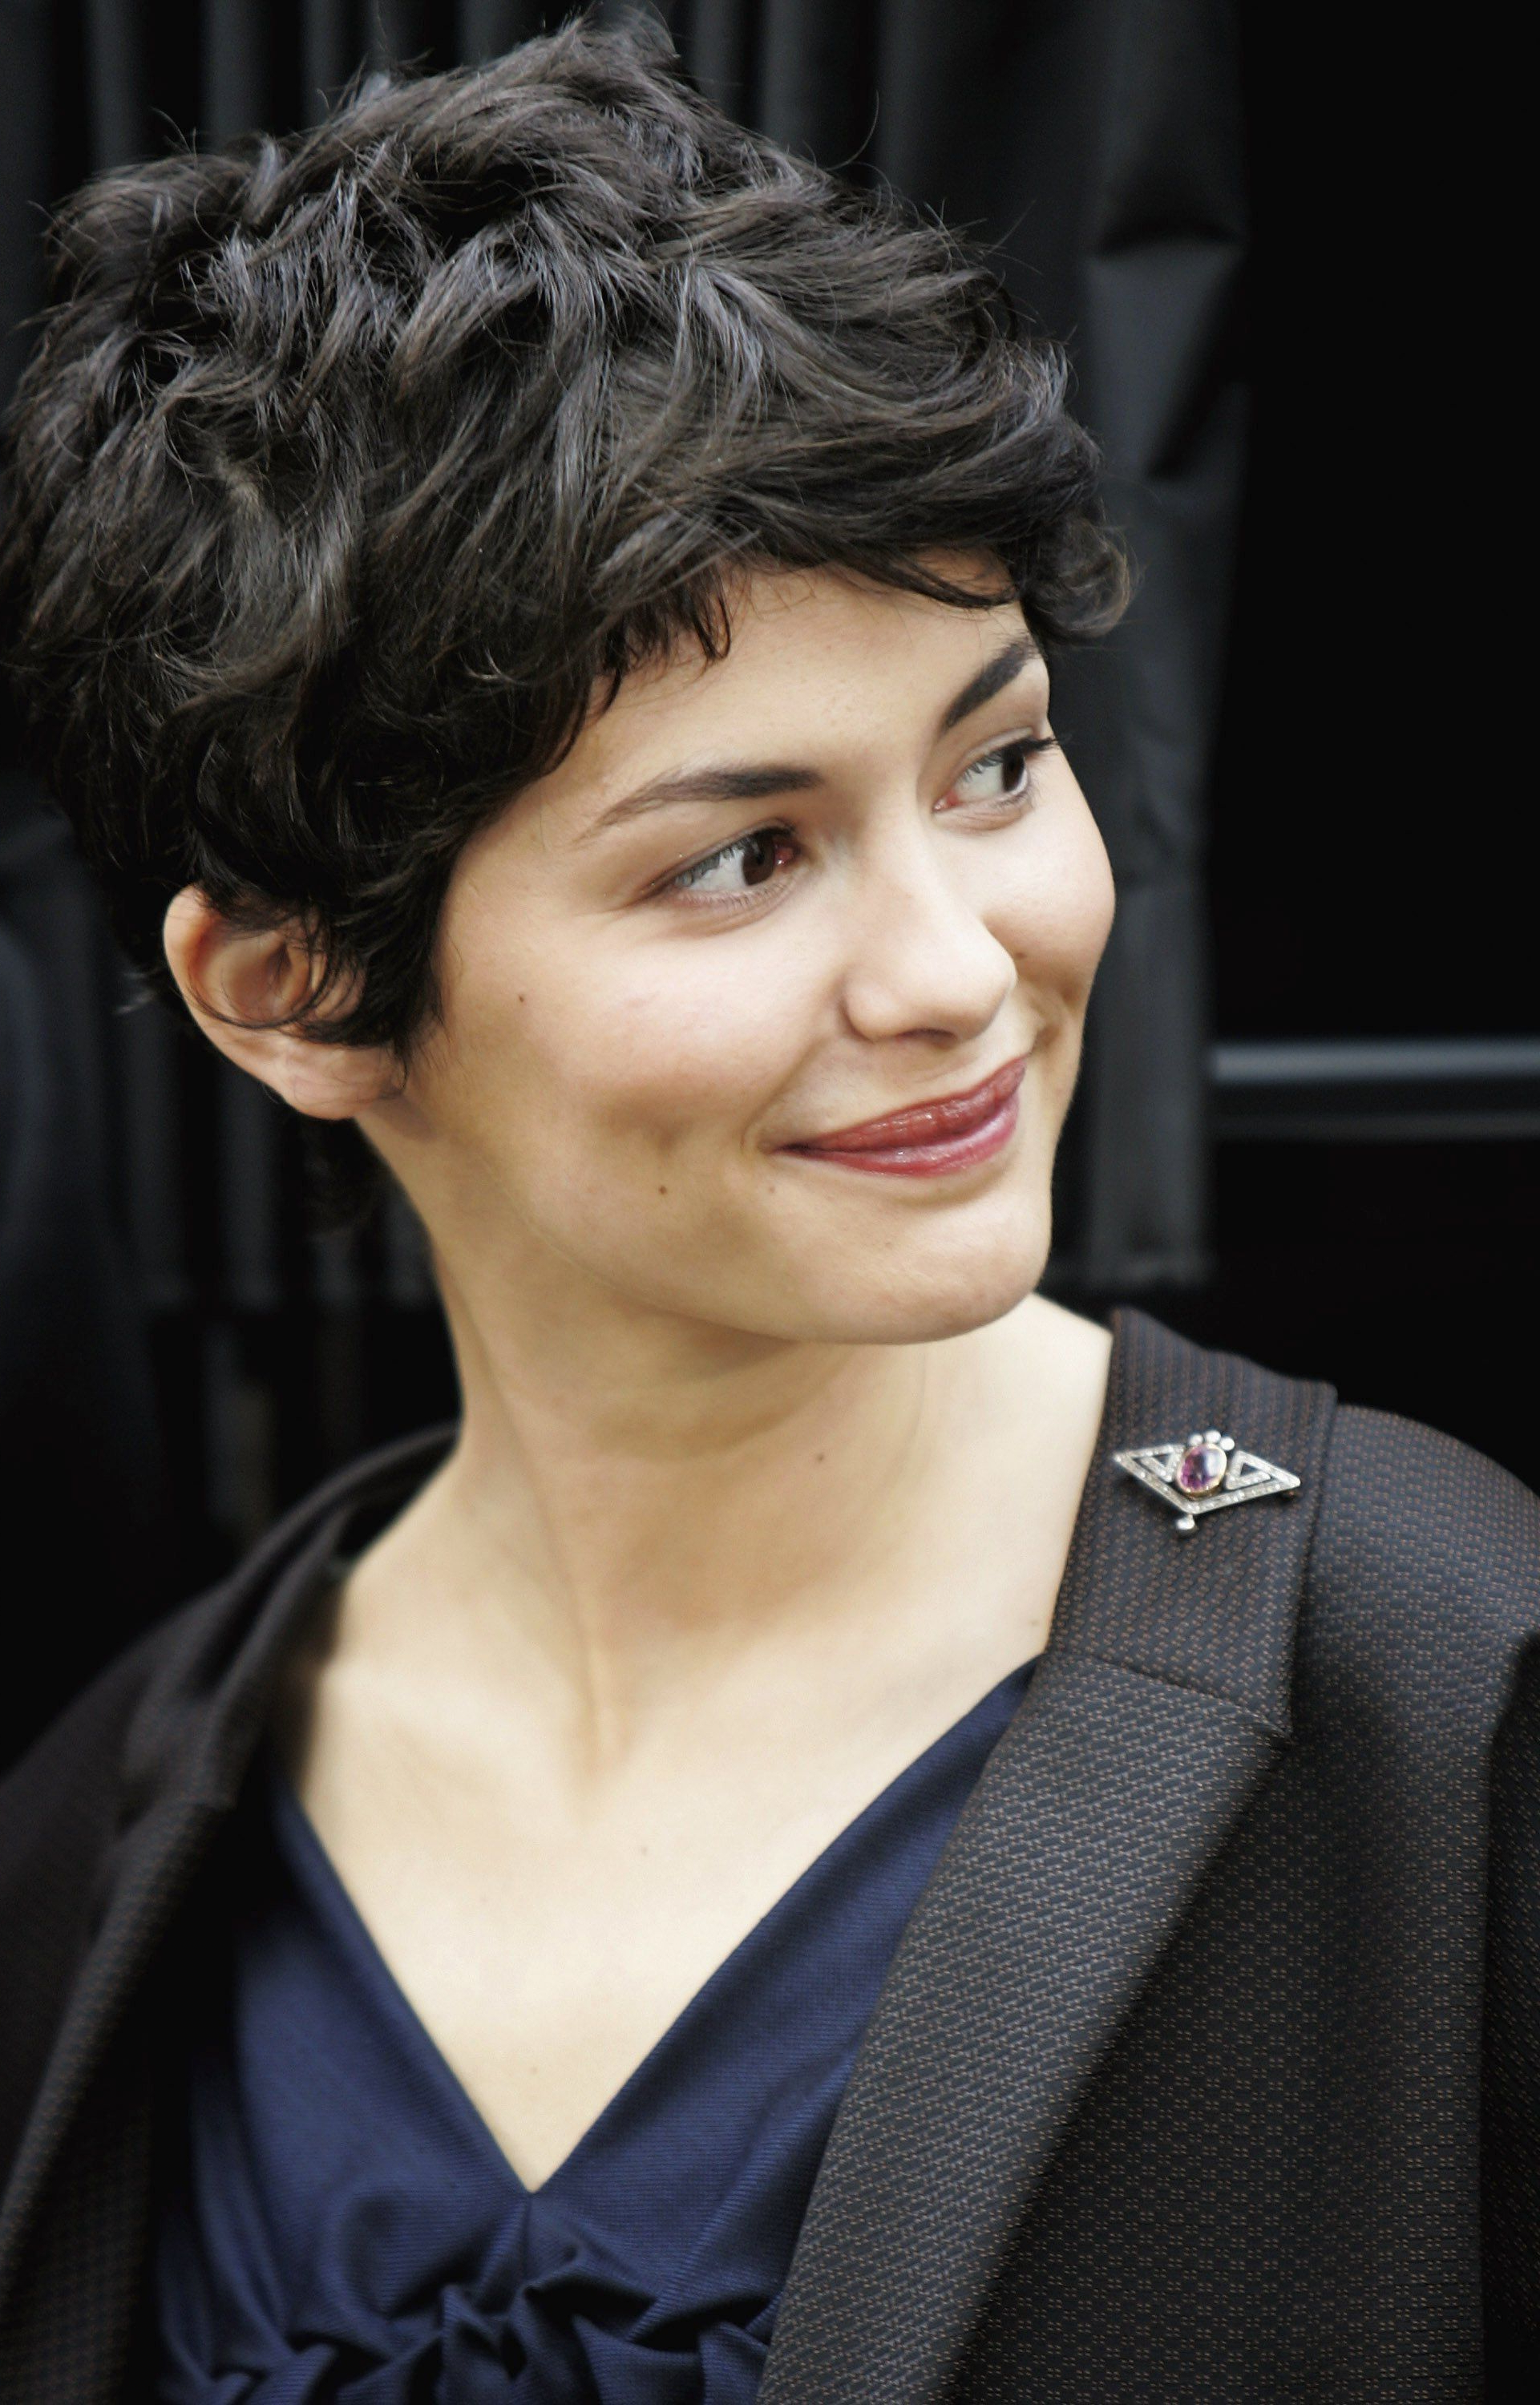 Audrey Tautou | Short Shorter Shortest In 2018 | Pinterest | Hair With Regard To Audrey Tautou Short Haircuts (View 8 of 25)